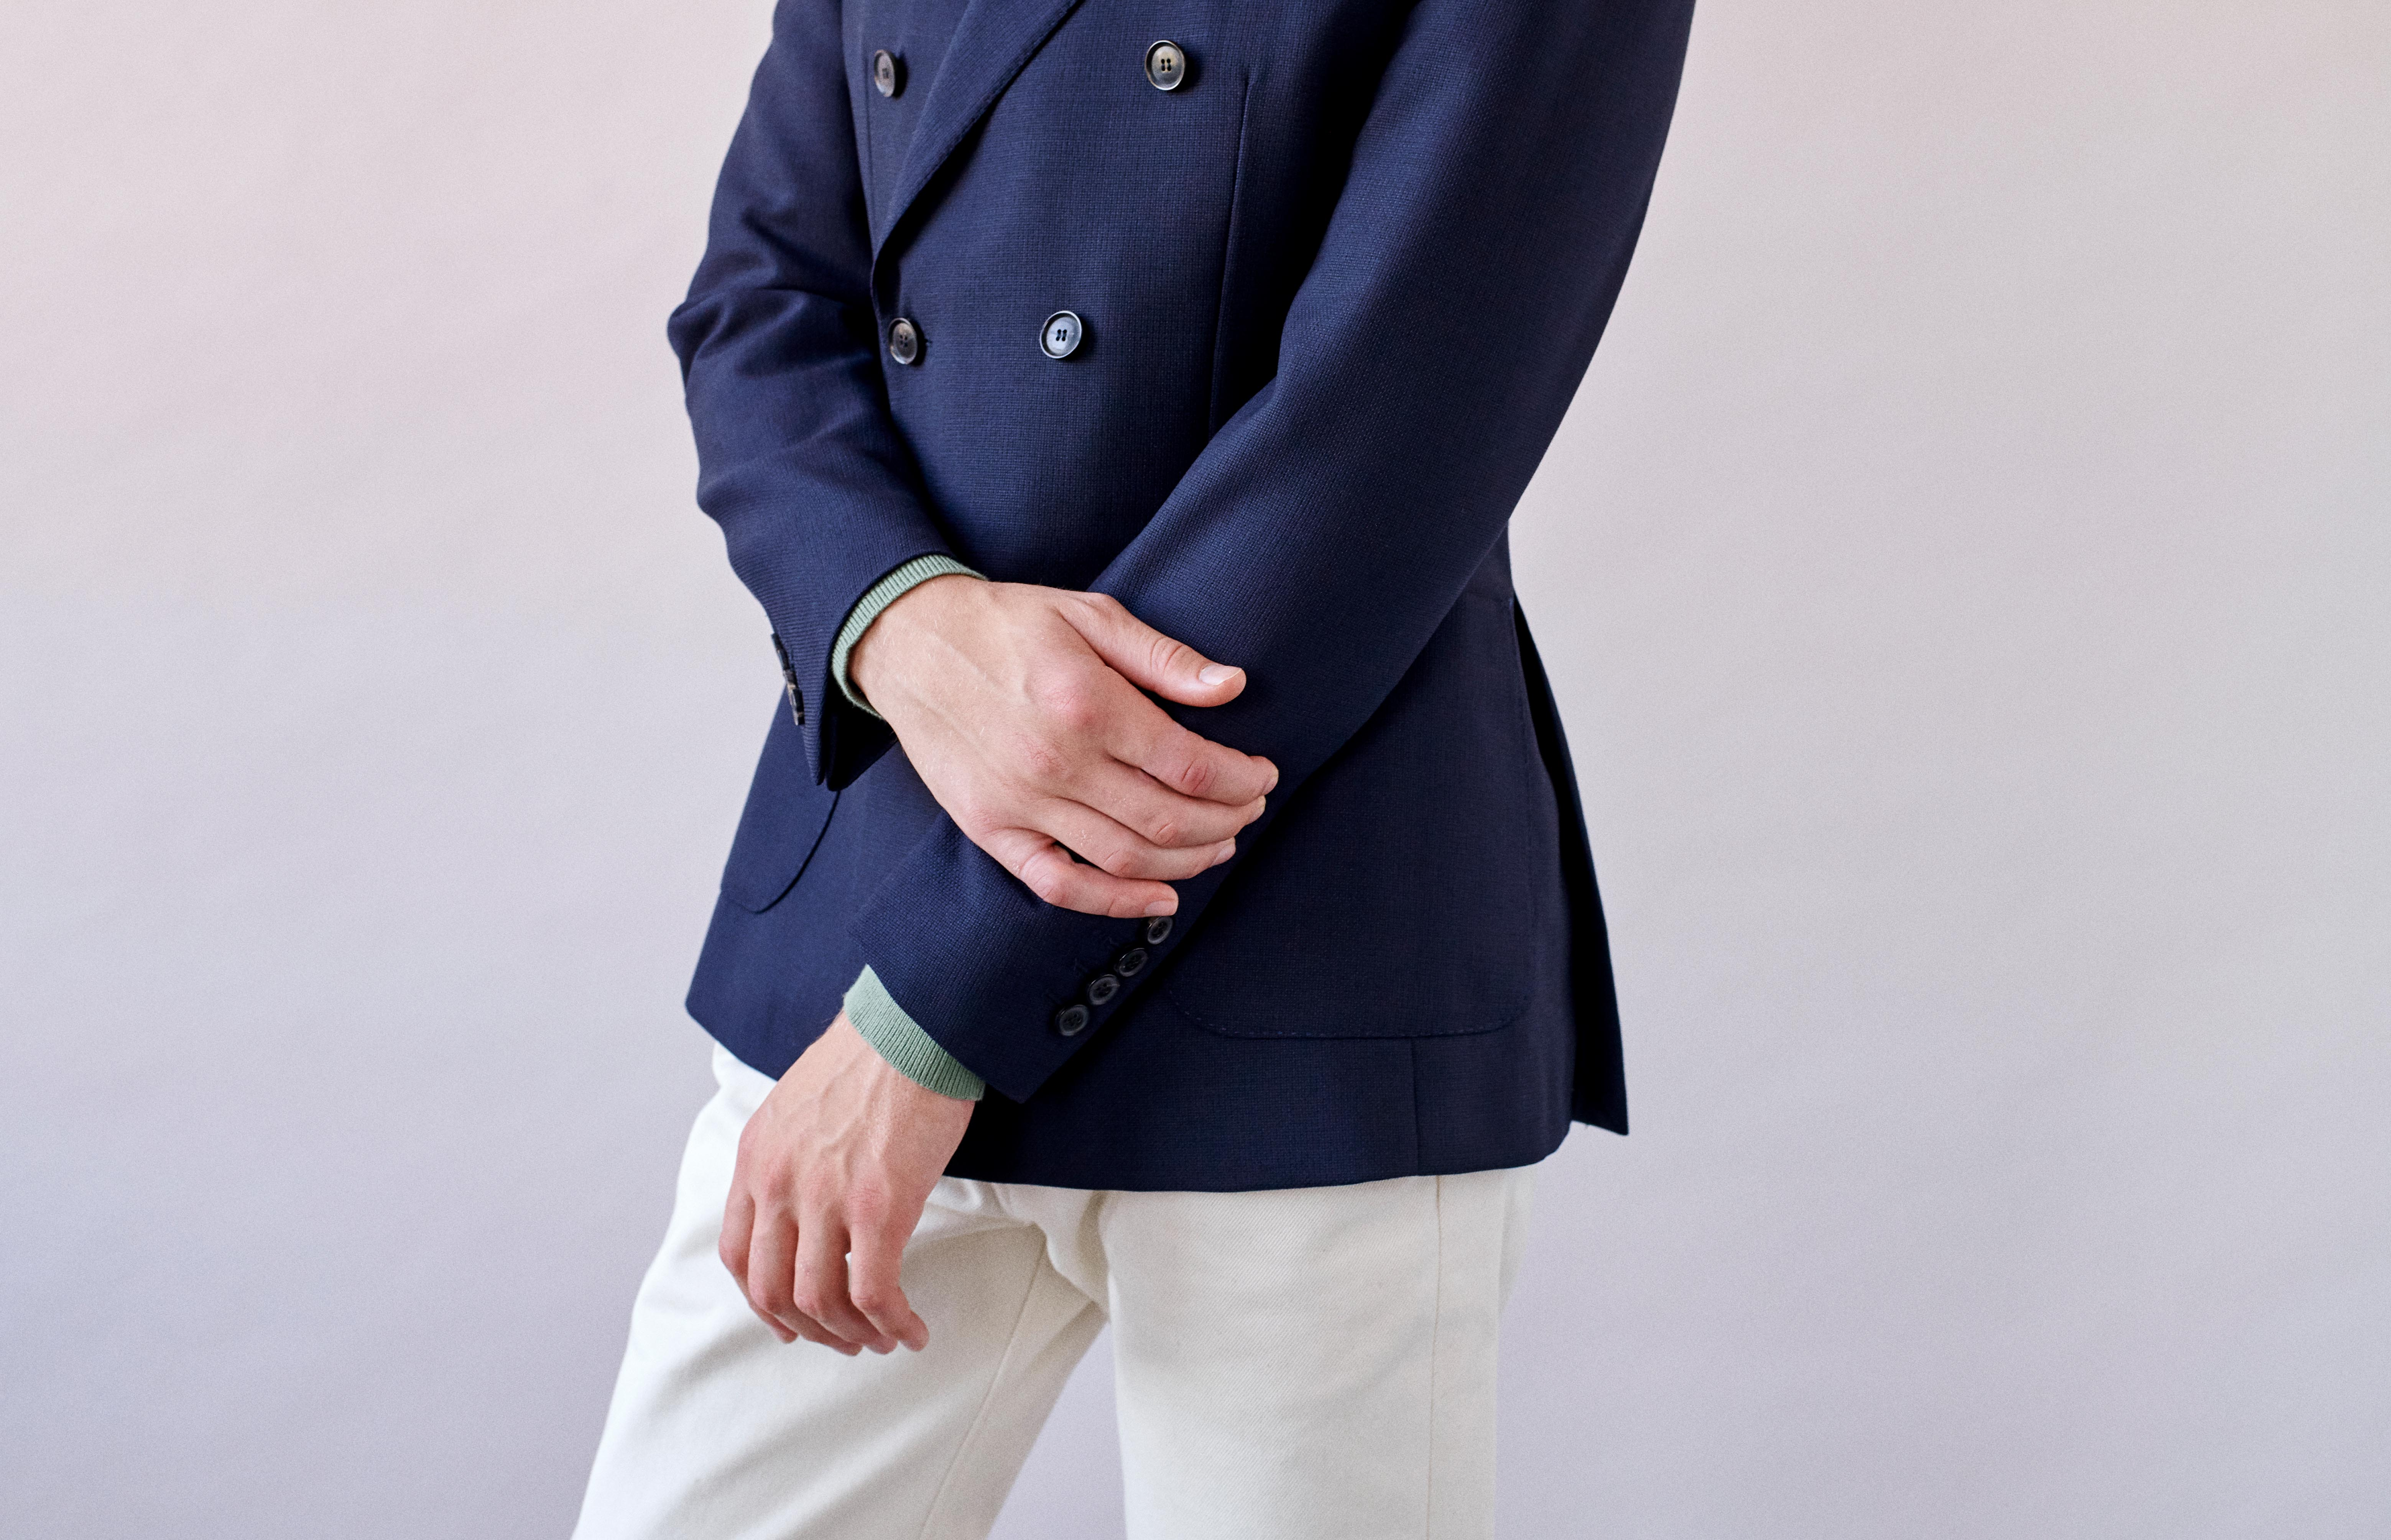 How a double-breasted blazer should fit